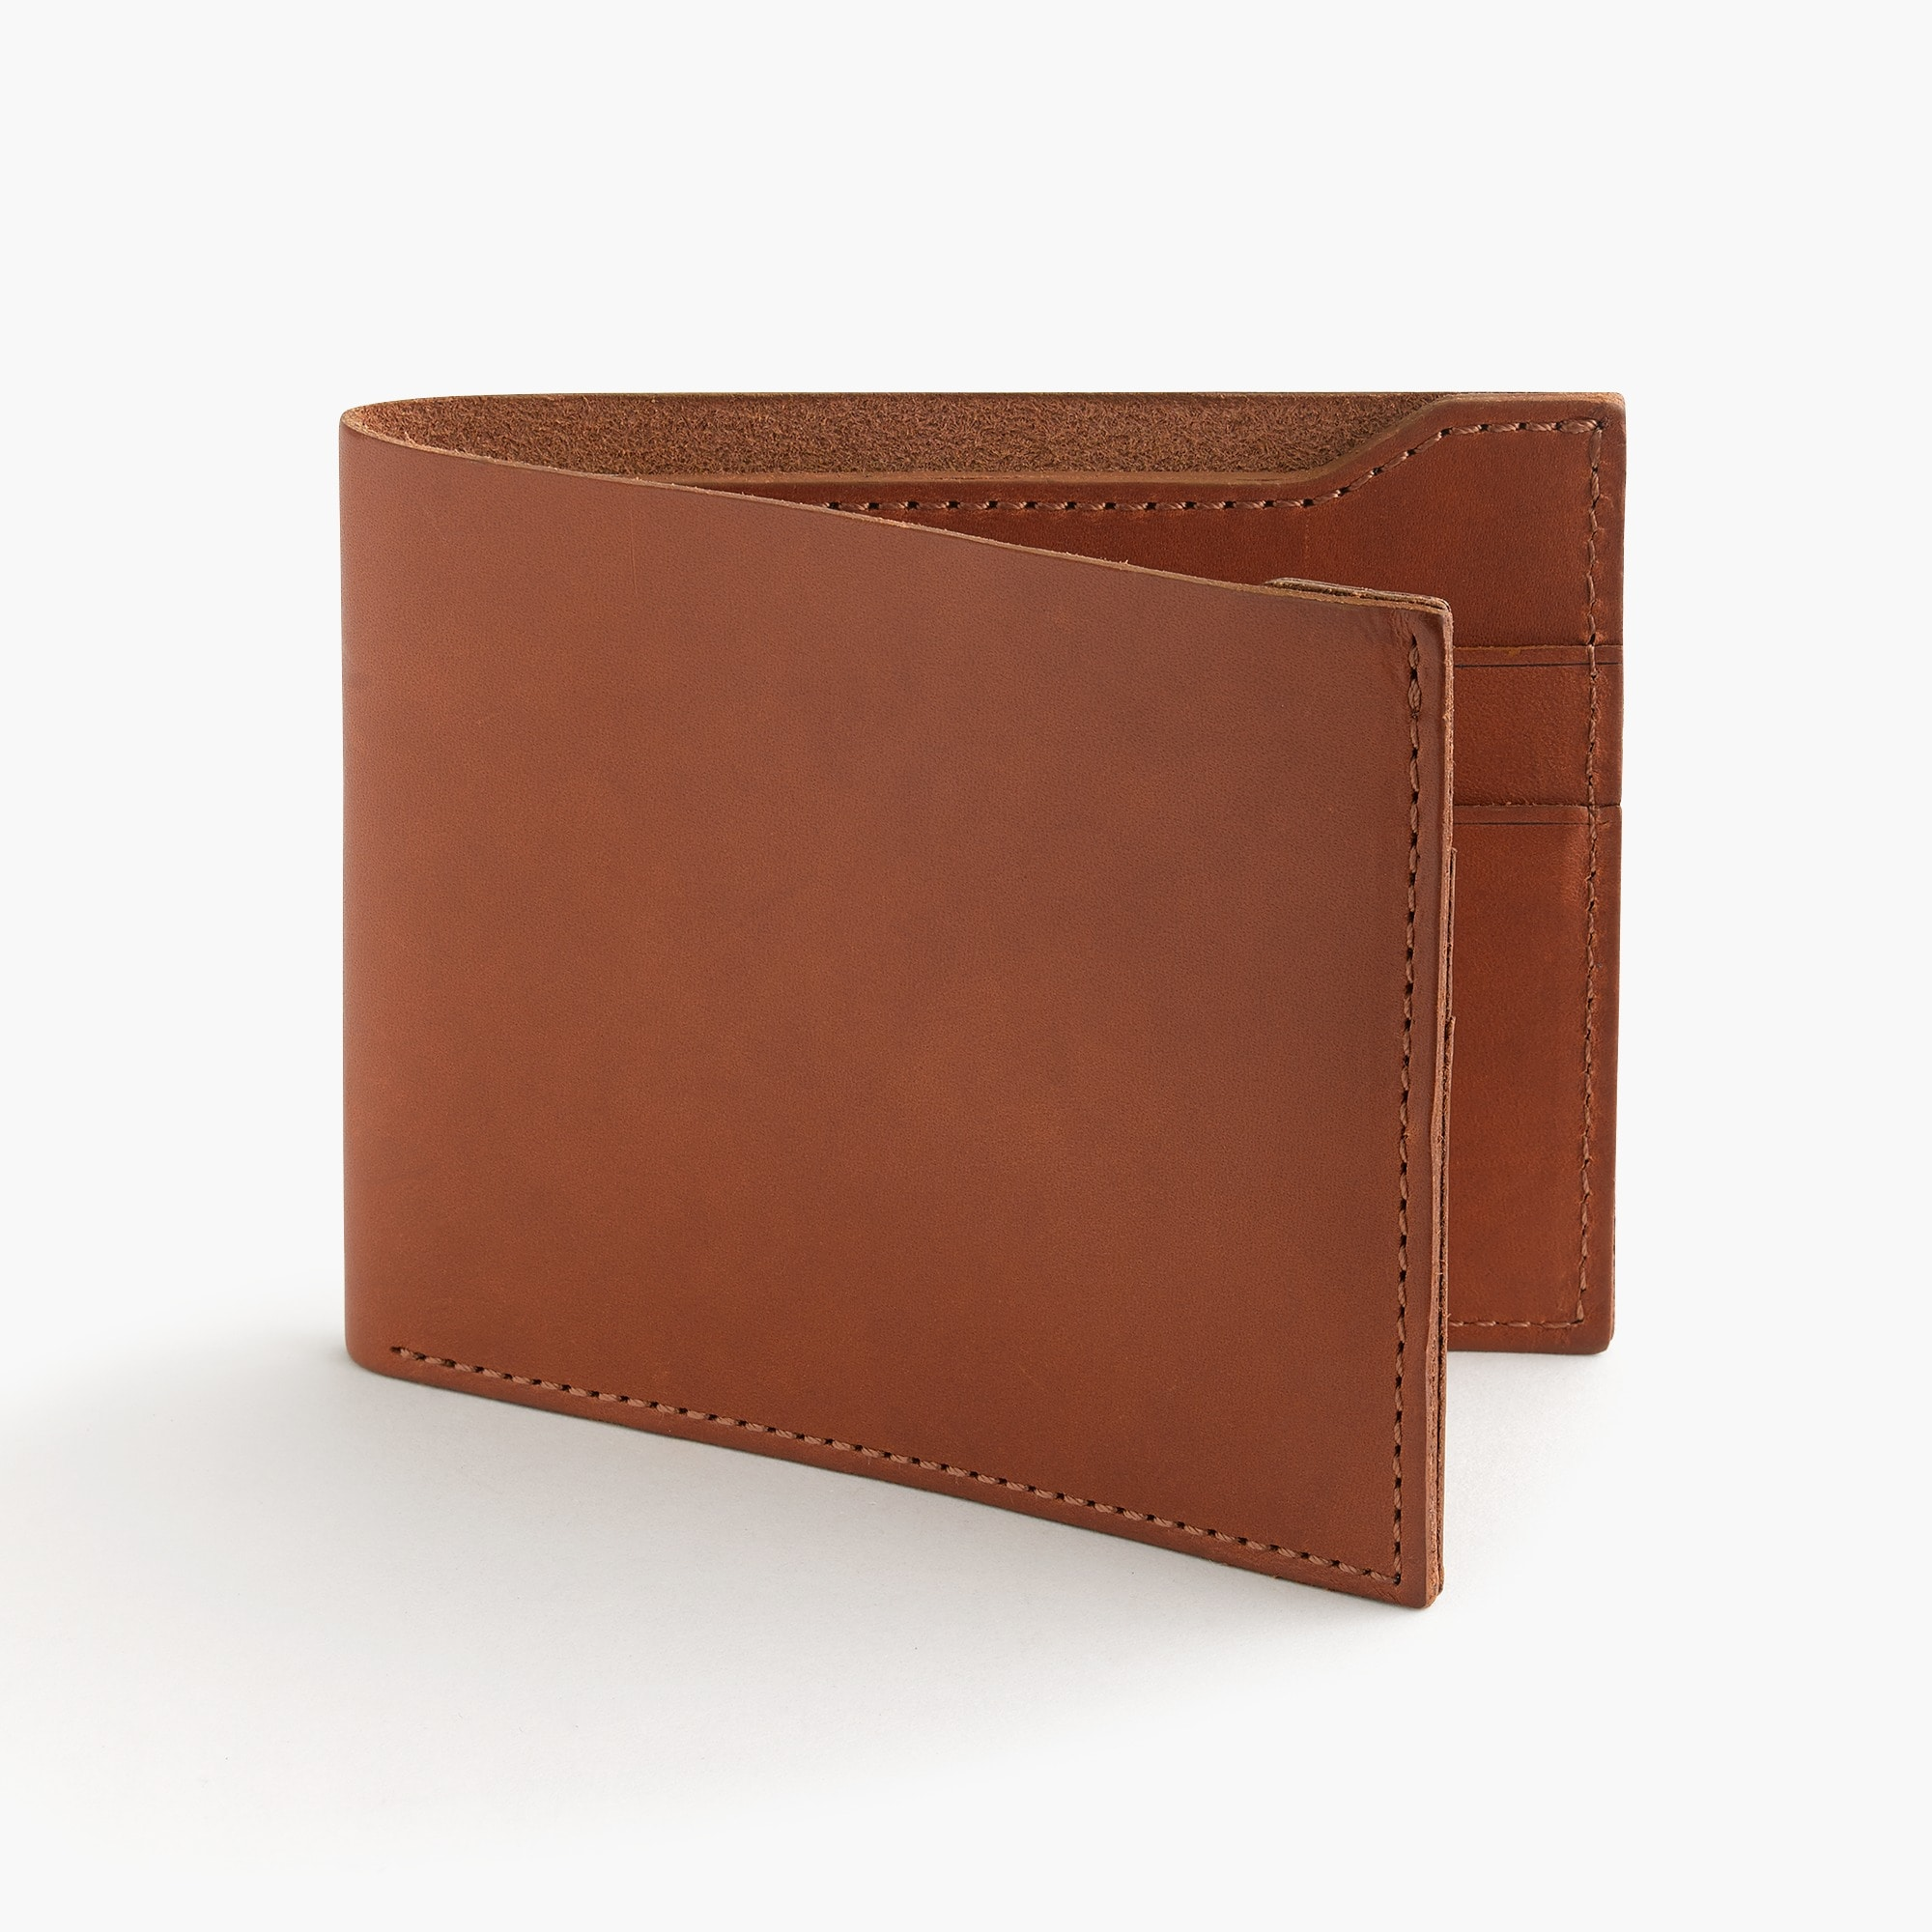 mens Billfold wallet in Italian leather